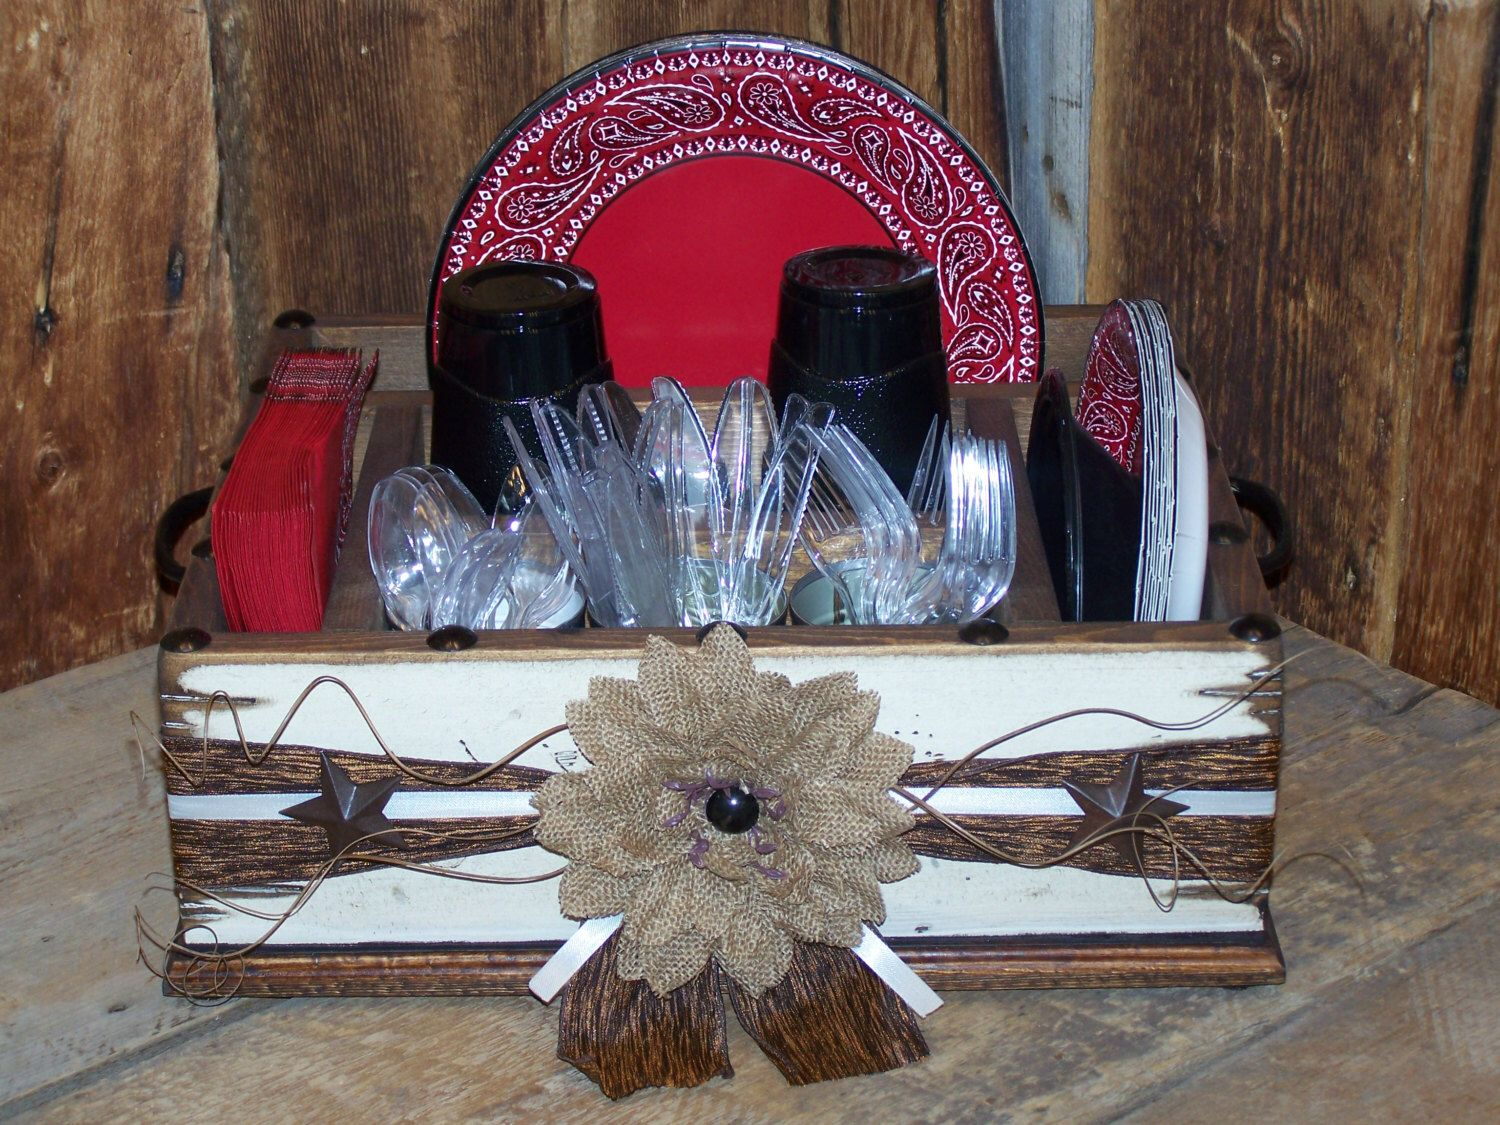 Rustic western decor themed party tableware utensil holder caddy organizer for napkins paper plates utensils and more. & Rustic western decor themed party tableware utensil holder caddy ...